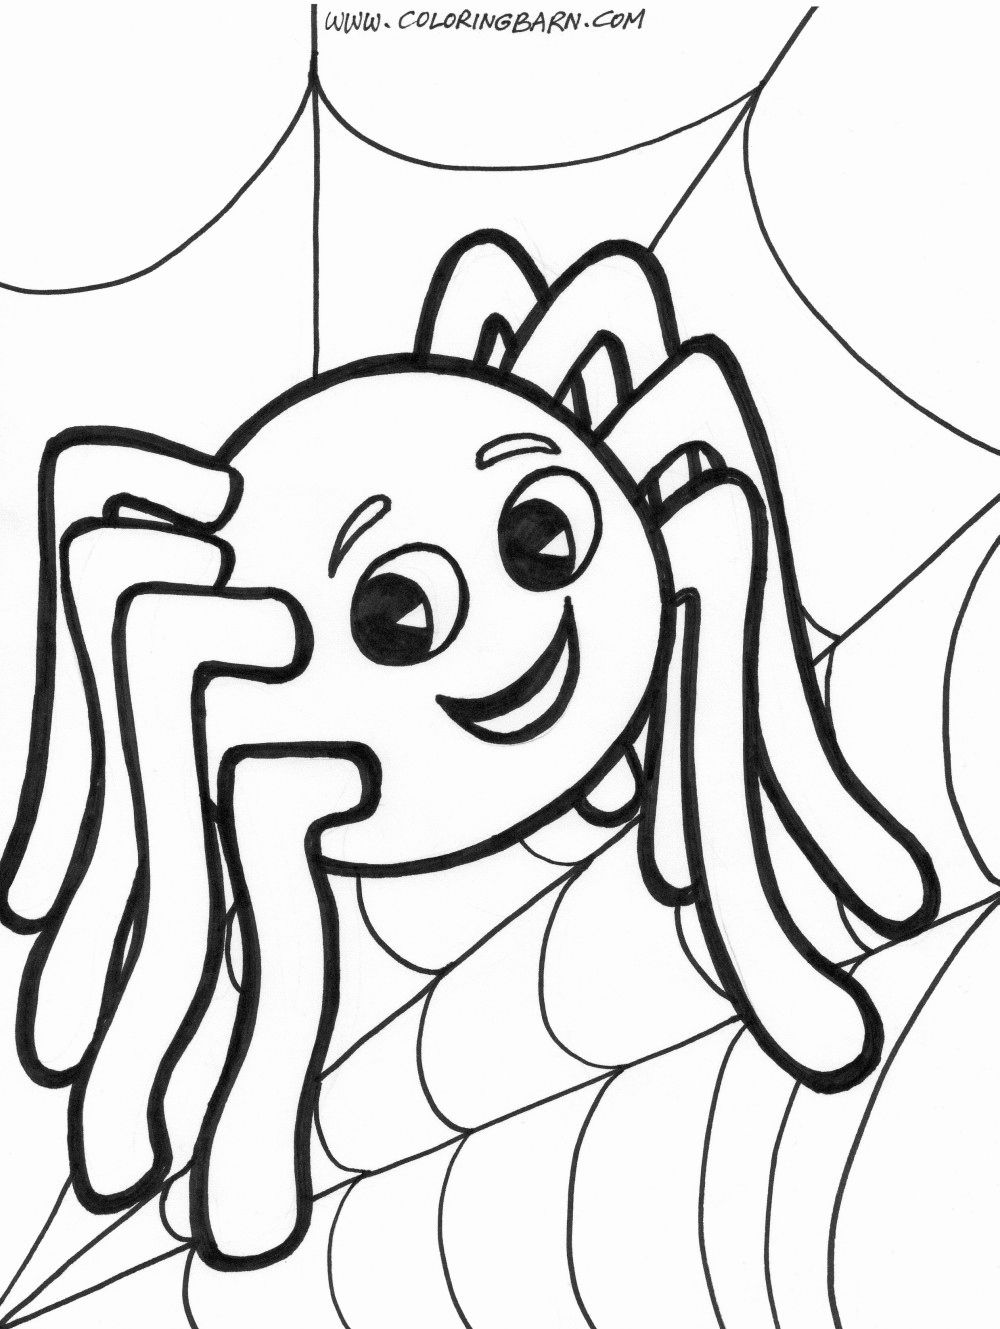 Fall Coloring Pages For Little Kids Halloween Coloring Book Kids Printable Coloring Pages Free Halloween Coloring Pages